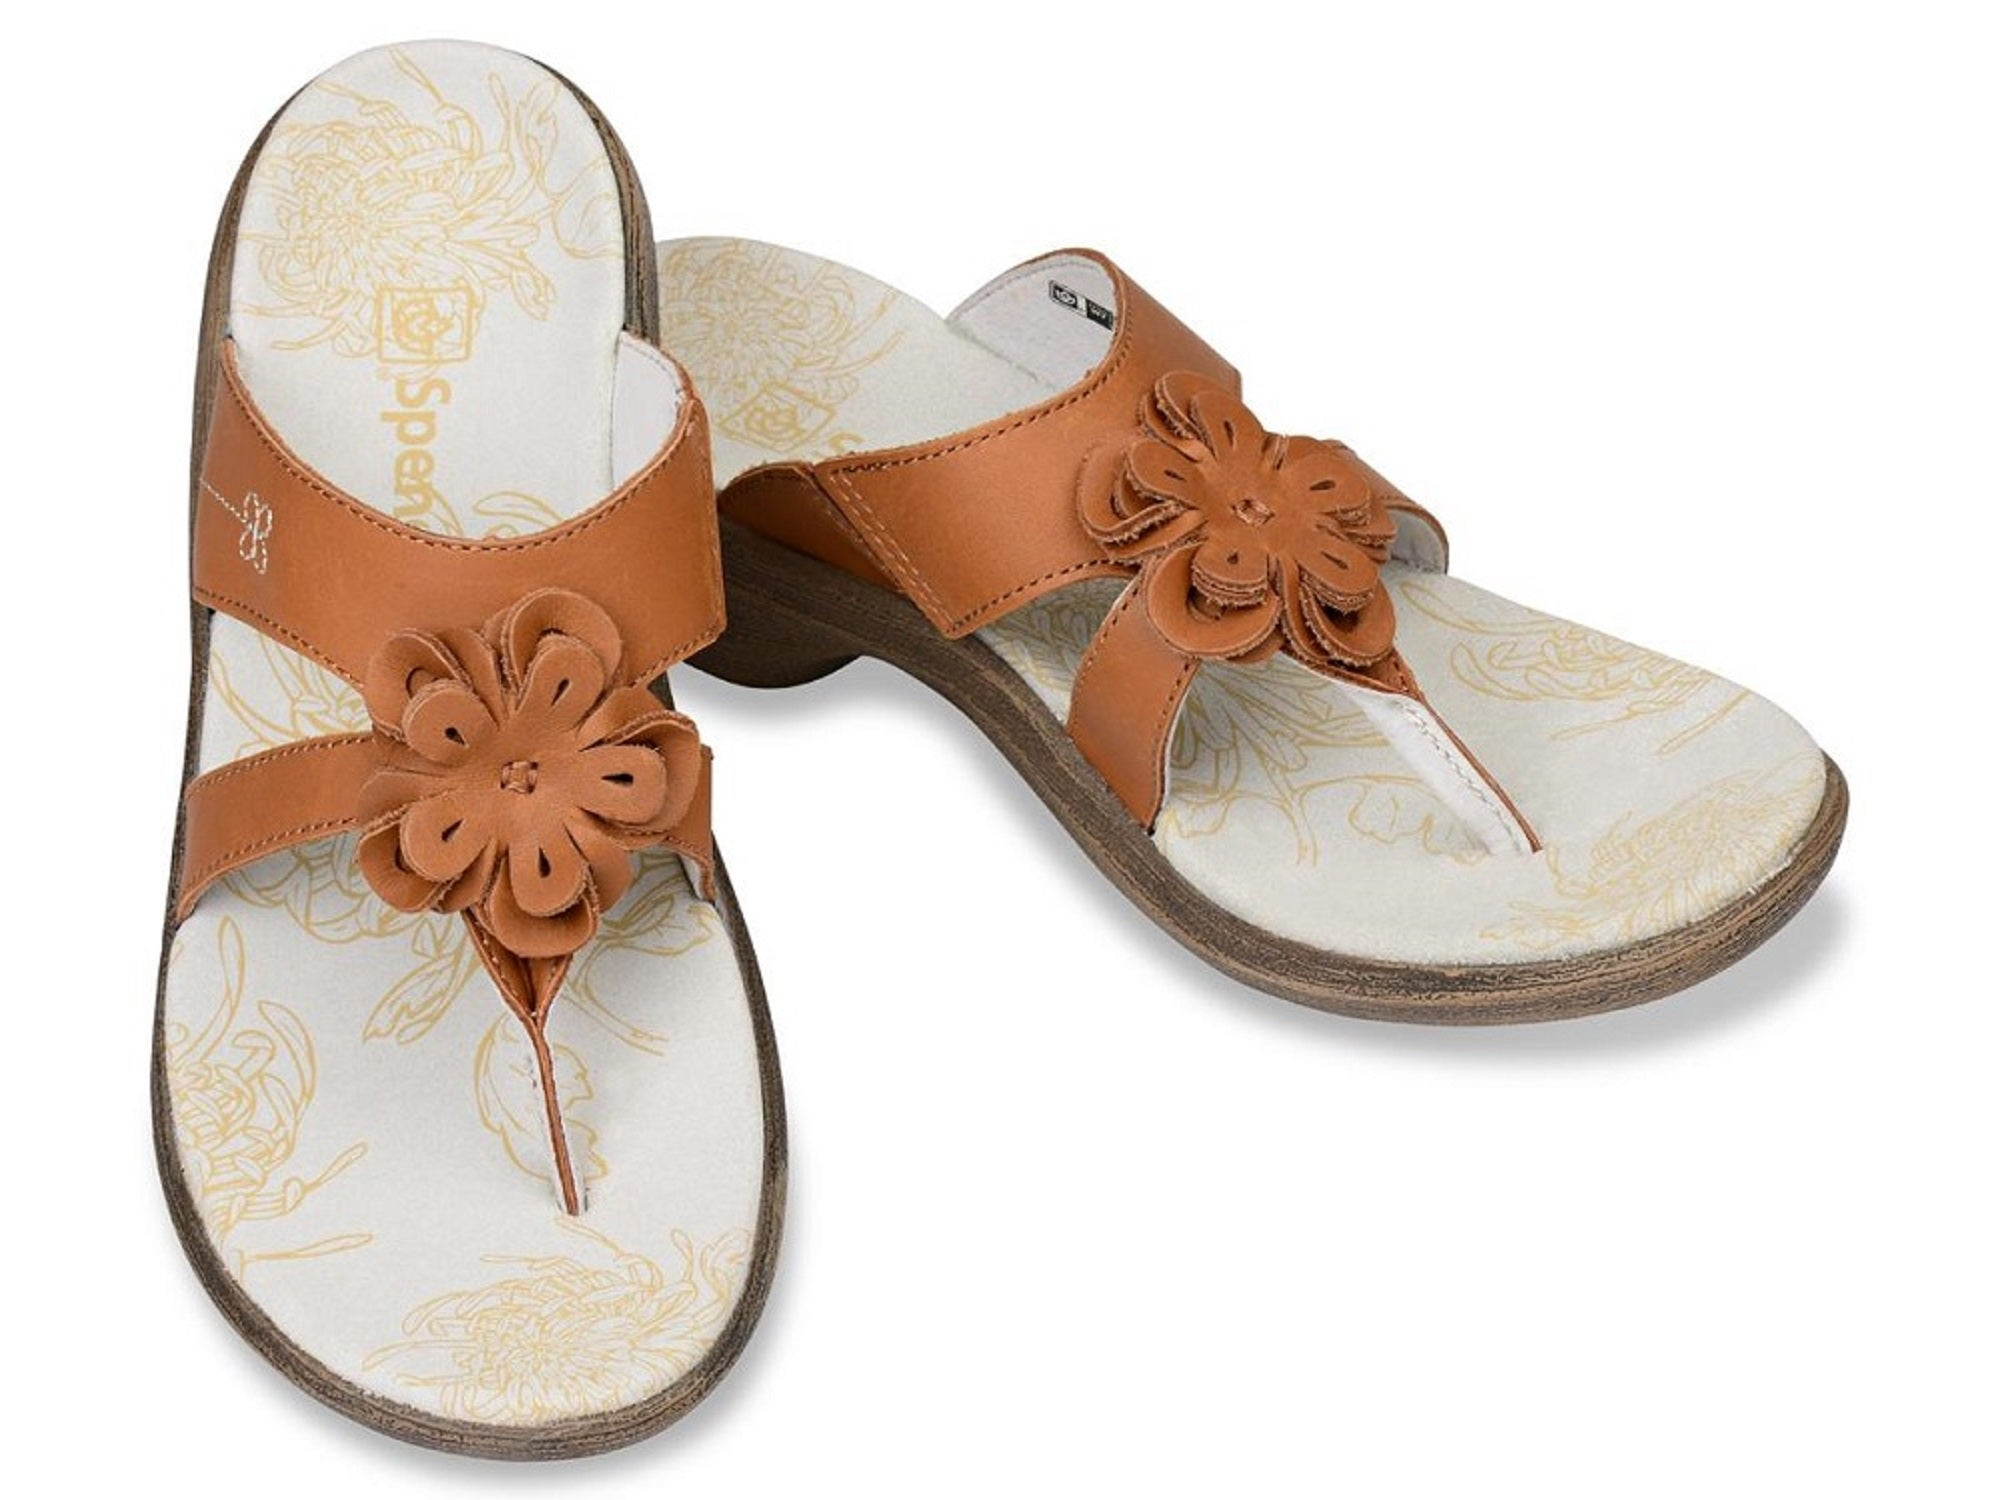 Spenco Rose - Supportive Casual Sandals - Tan Women's - Size 7